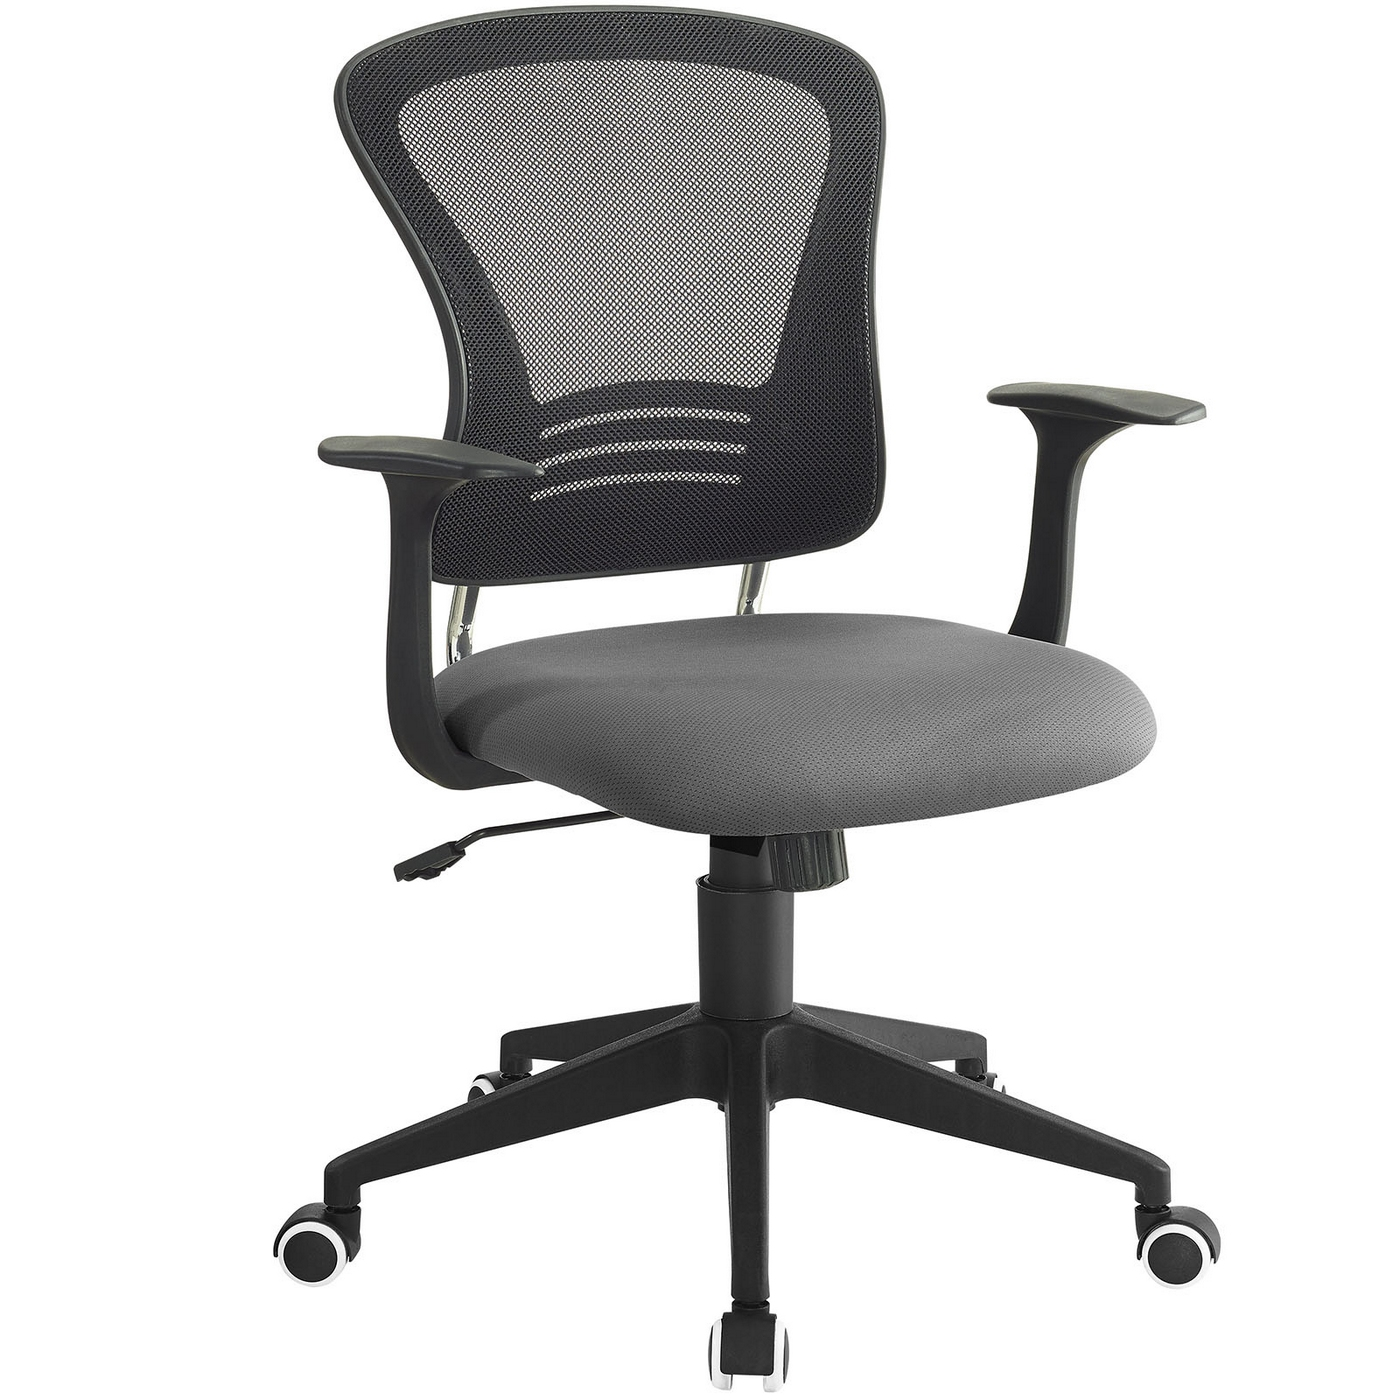 Poise Modern Ergonomic Mesh Back Office Chair With Lumbar Support Gray